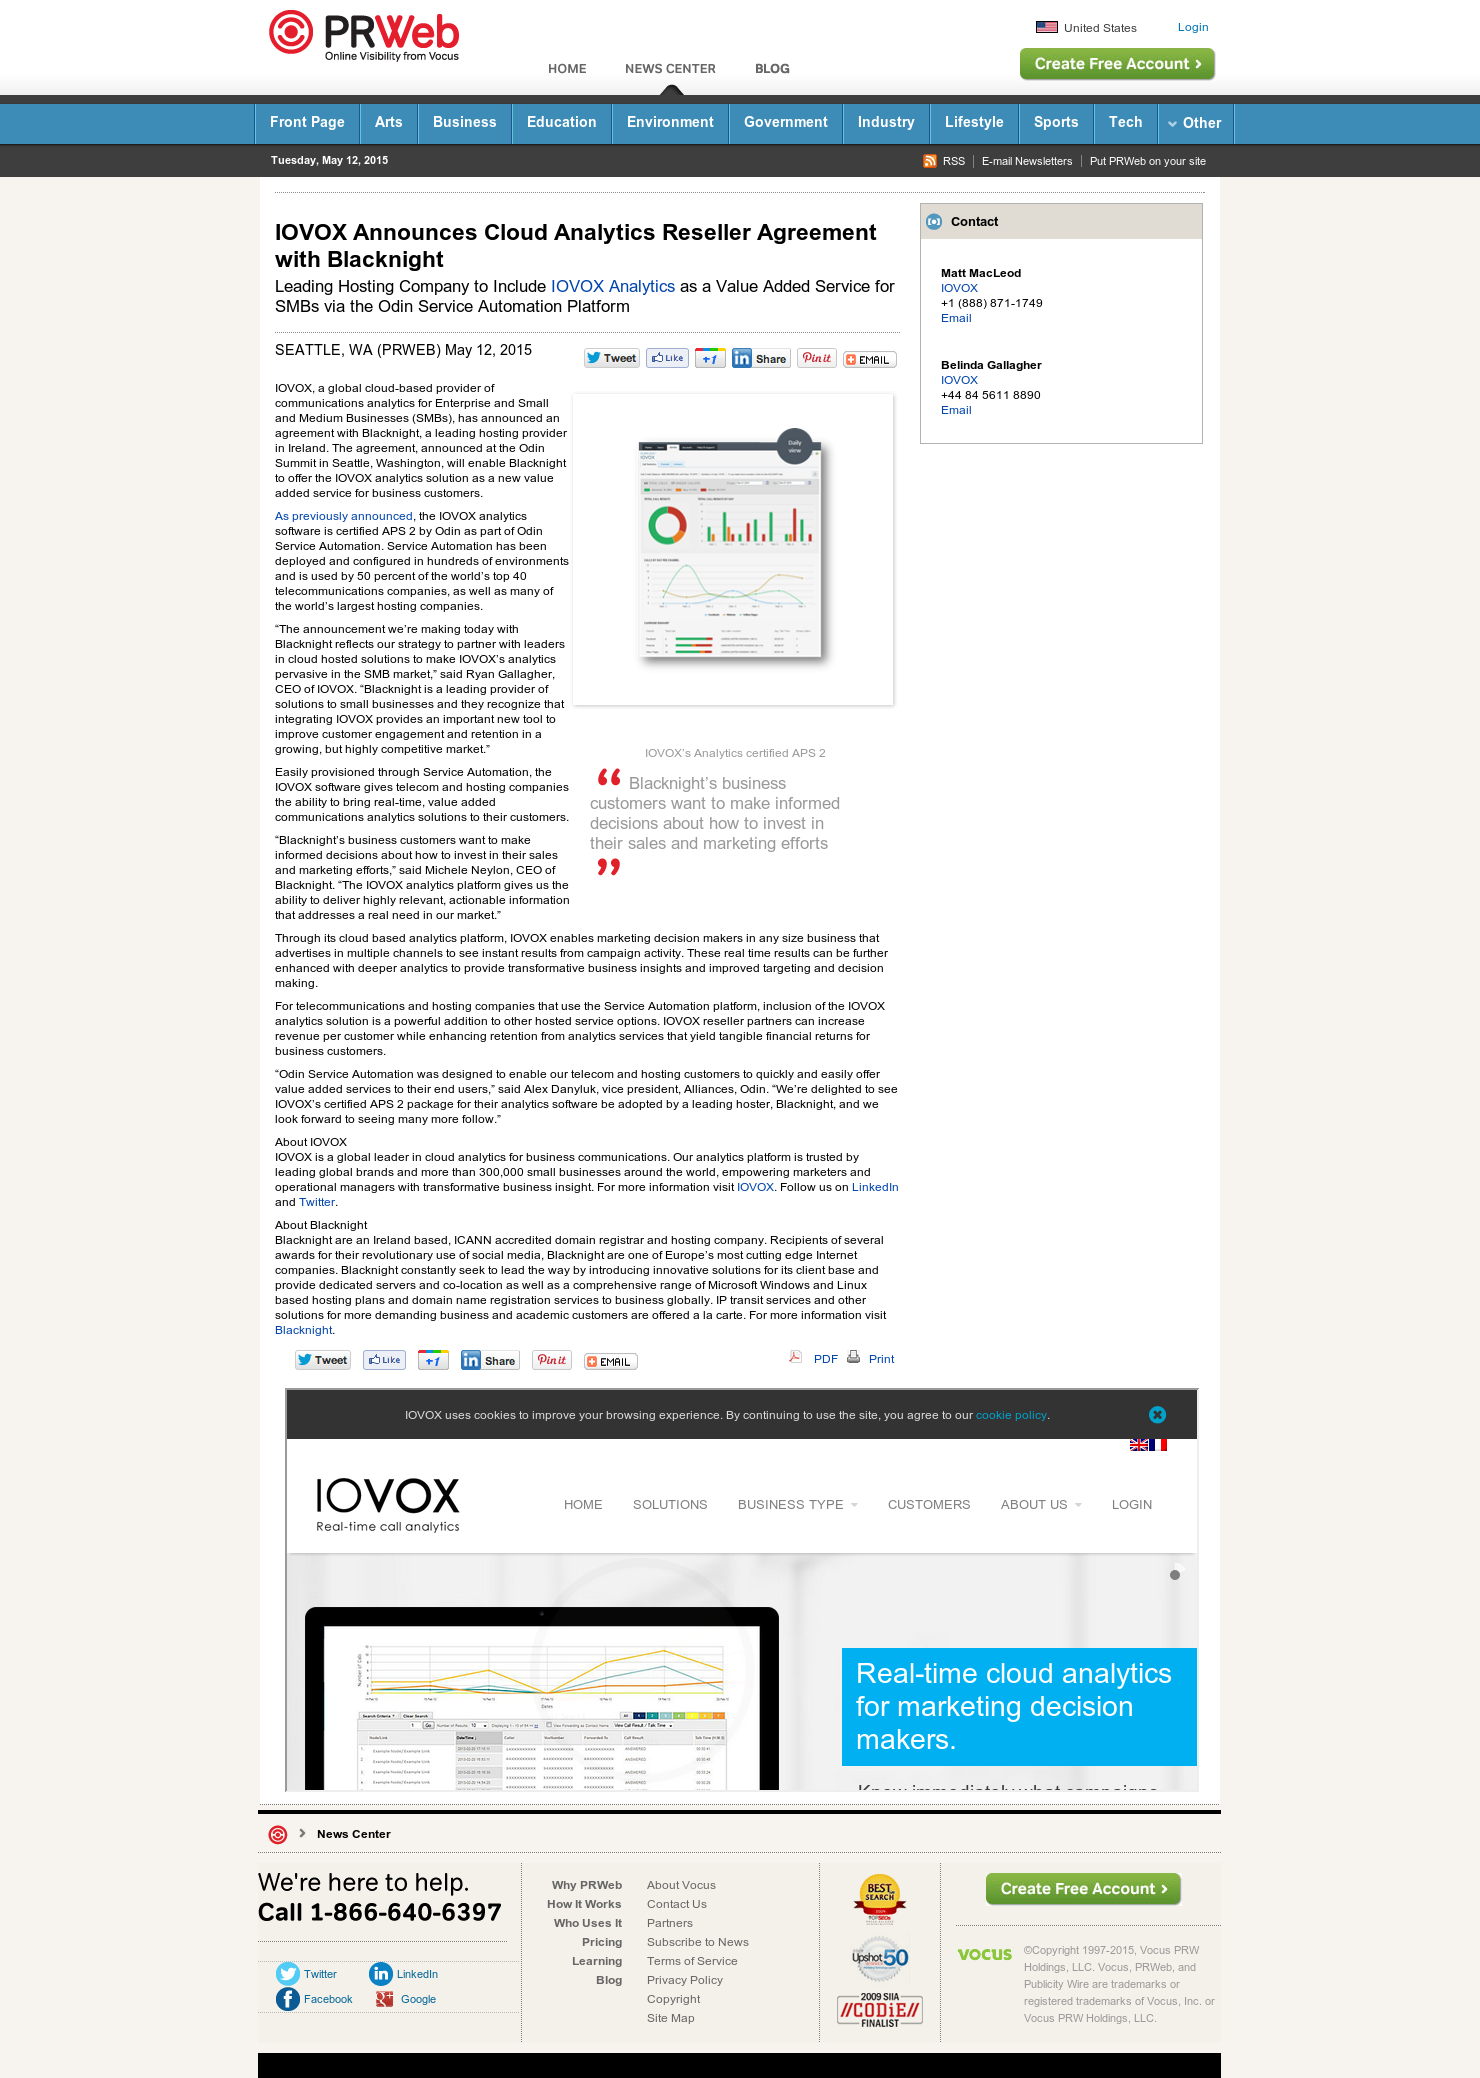 Iovox Announces Cloud Analytics Reseller Agreement With Blacknight